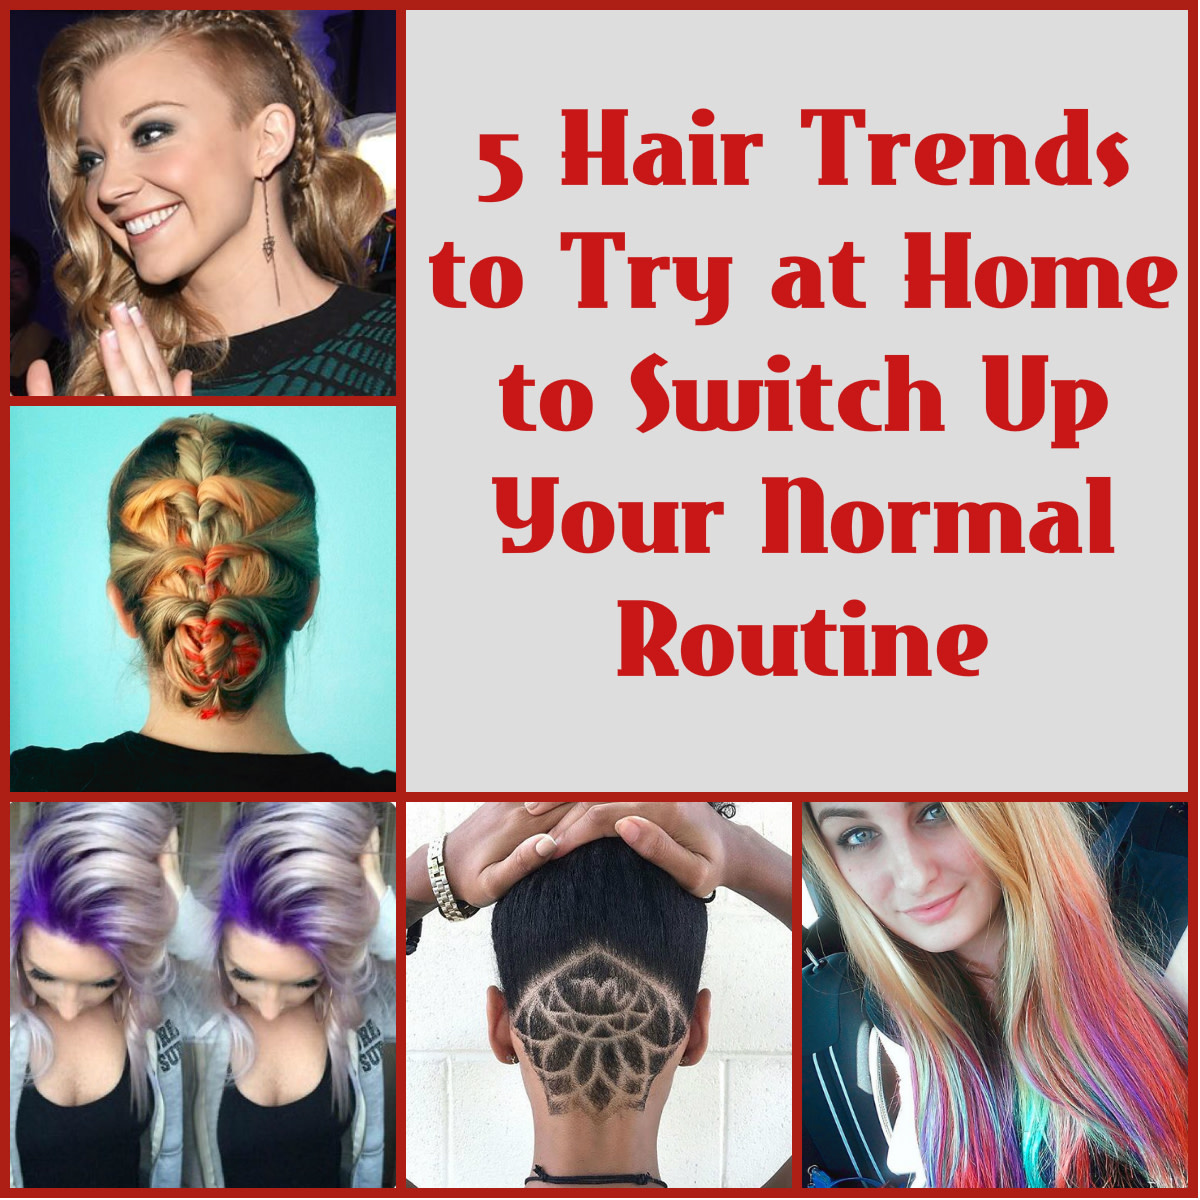 Hair DIY: 5 Hair Color and Style Trends to Switch up Your Normal Routine